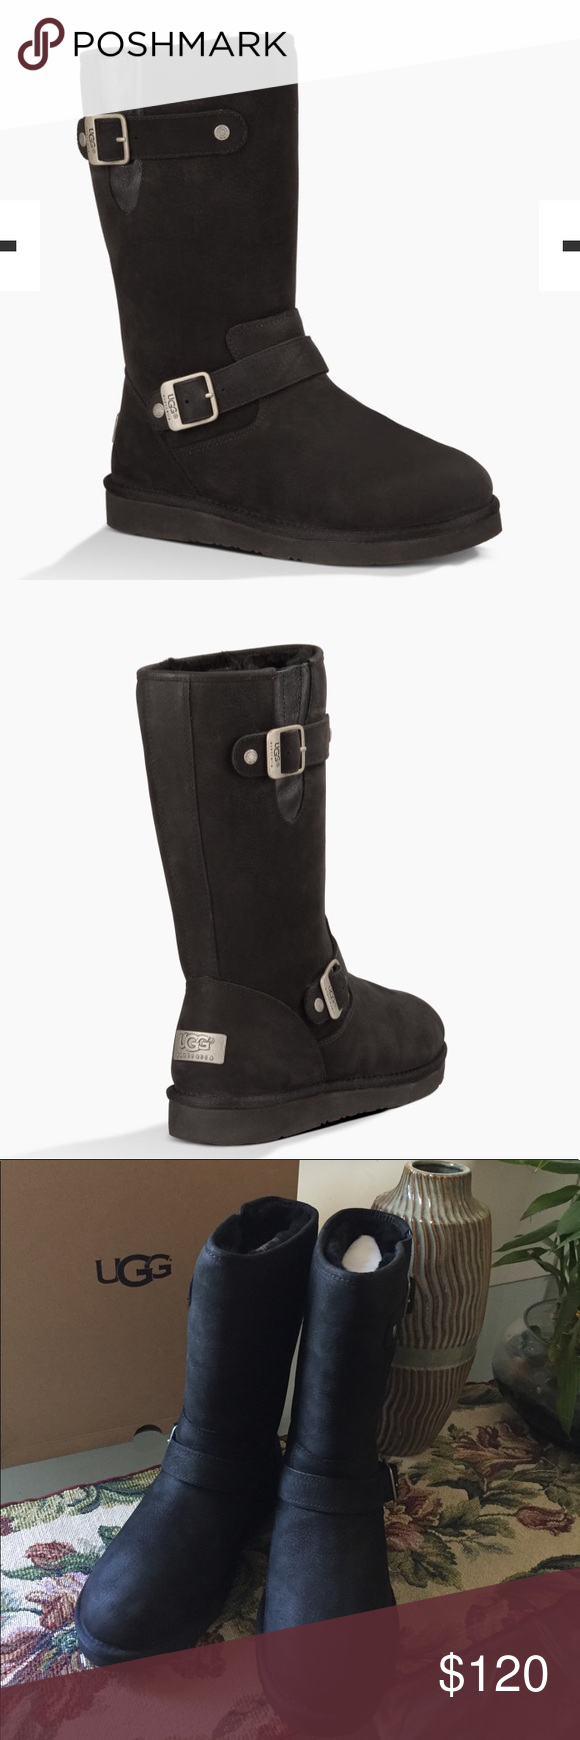 bf44549a1ad NEW UGG SUTTER. Black Model: 1005374 A Treadlite by UGG™ outsole ...